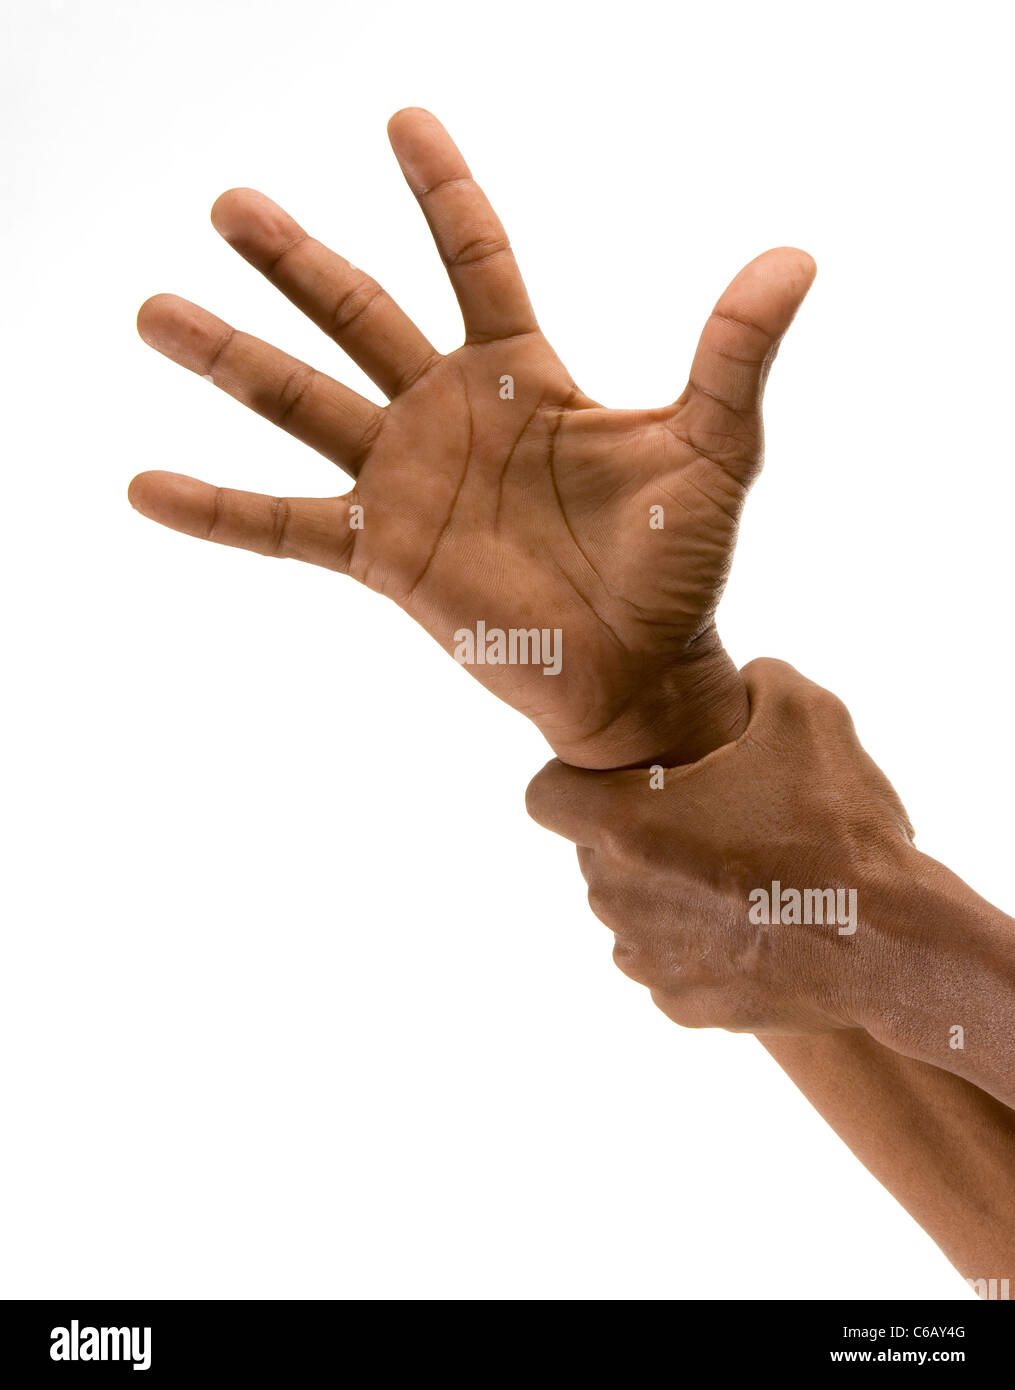 African's outstretched hand being gripped at the wrist by another hand. . Studio shot on white background. - Stock Image